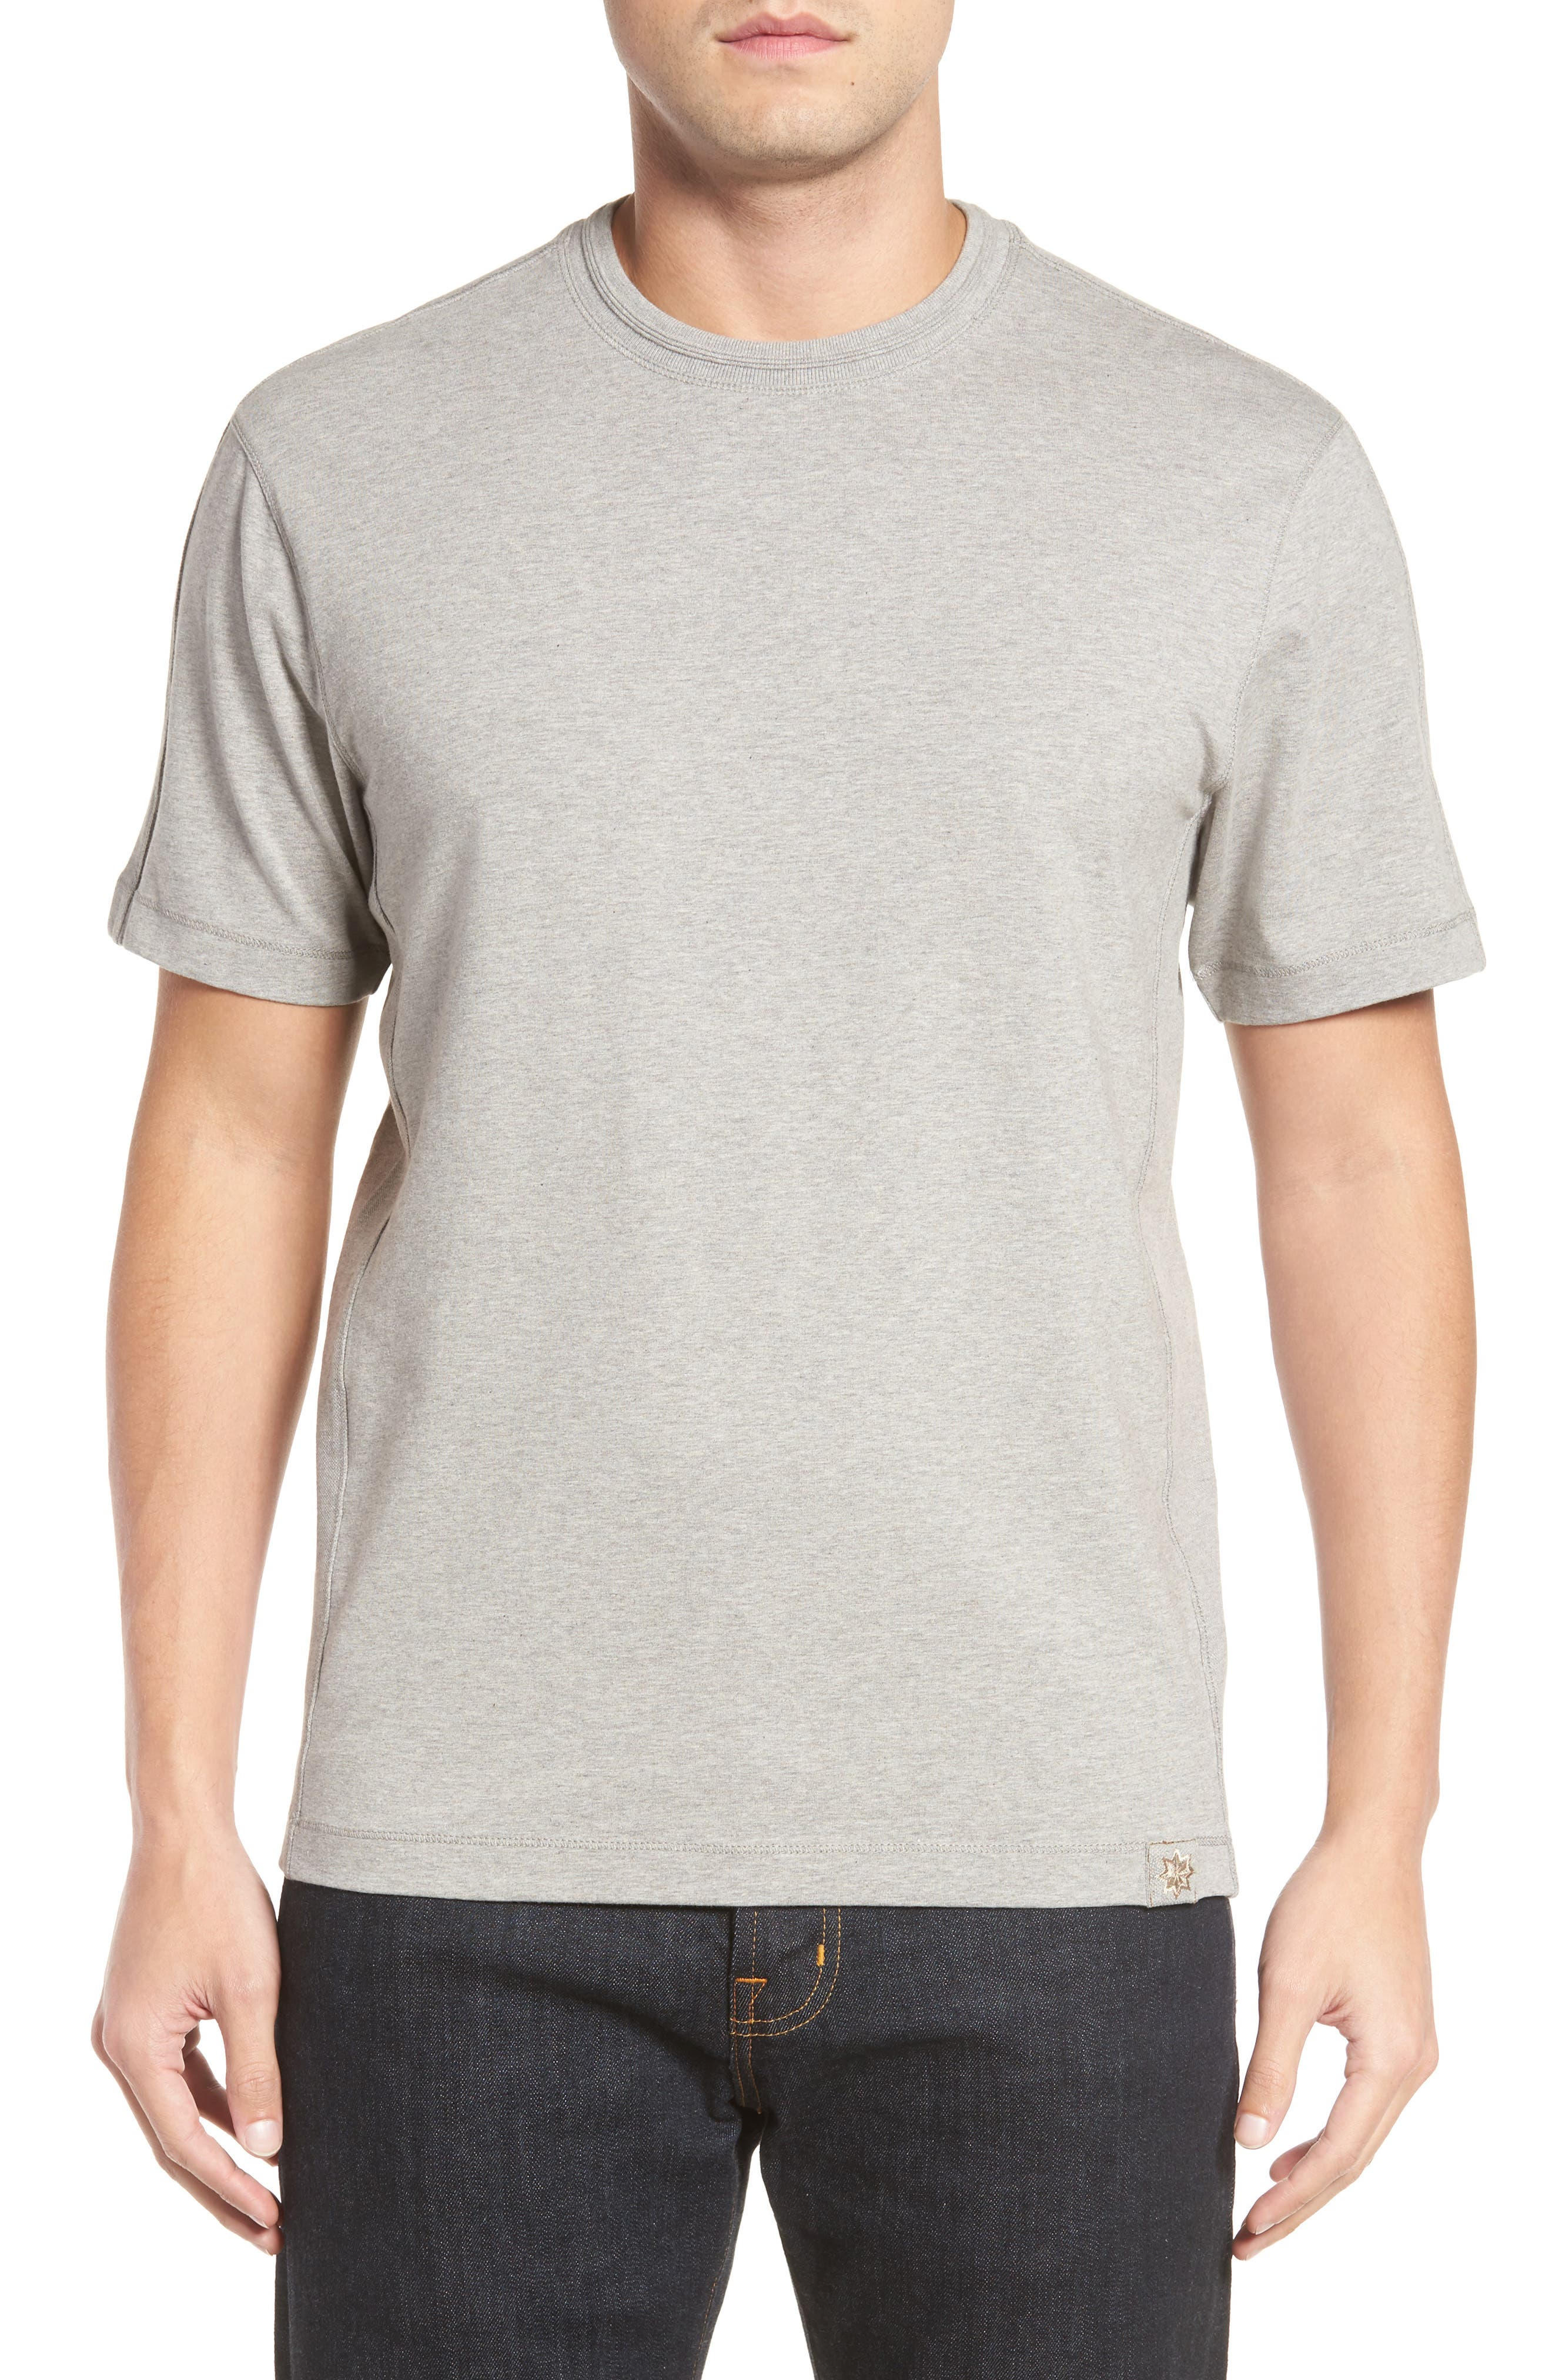 Steve Stretch Jersey T-Shirt,                             Main thumbnail 1, color,                             Silver